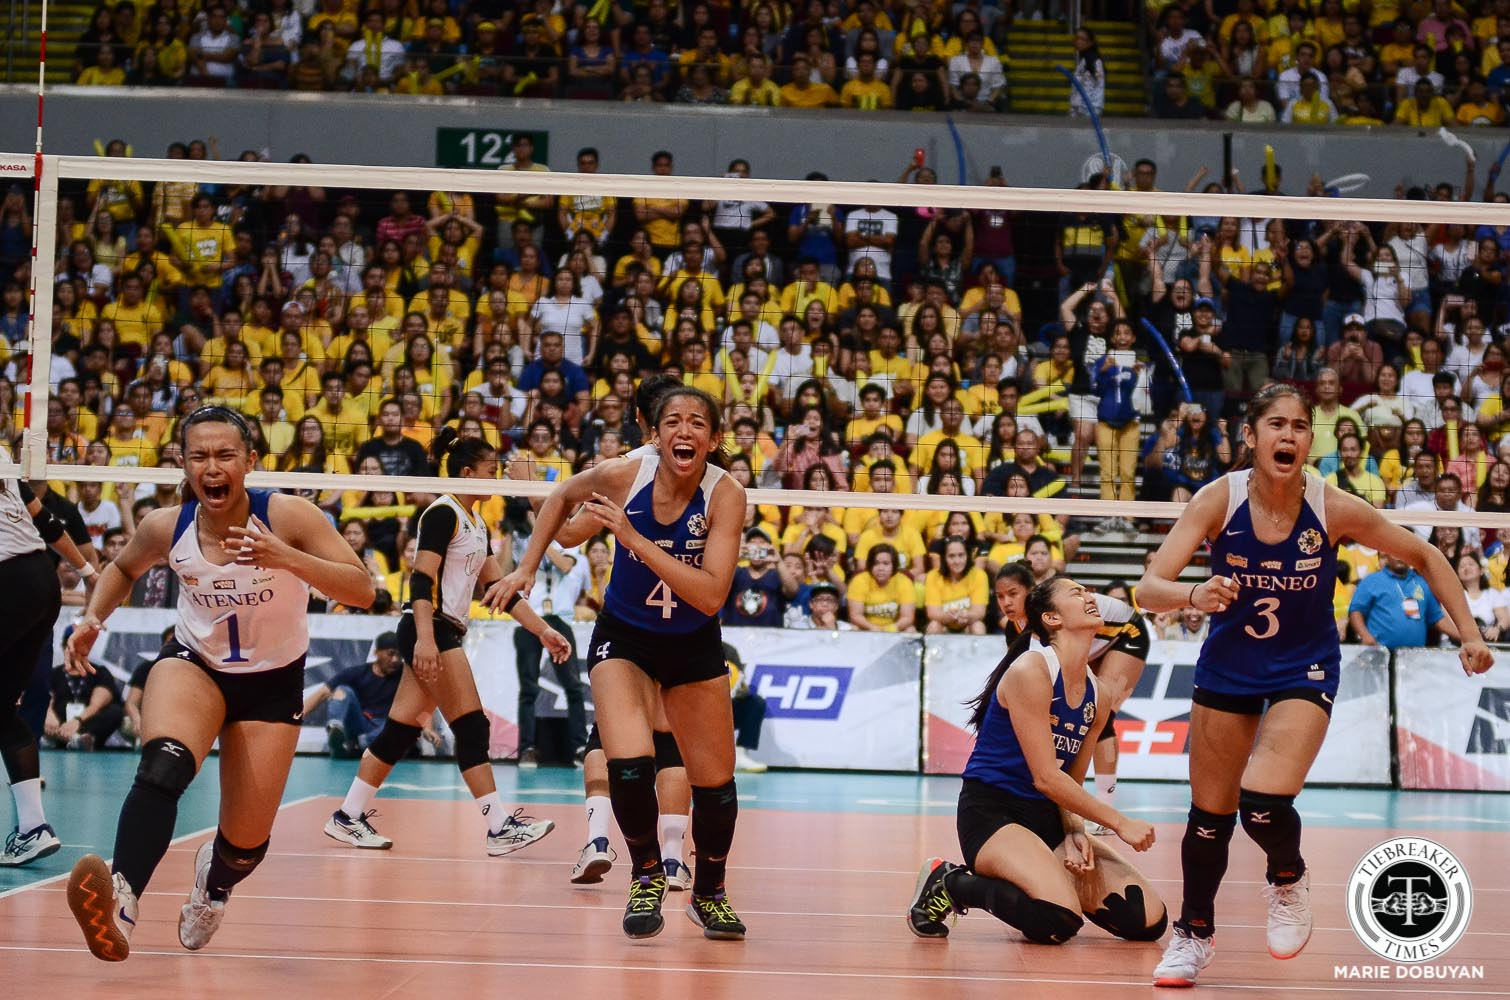 Tiebreaker Times Ateneo Lady Eagles reign again in UAAP Women's Volleyball, overwhelm UST ADMU News UAAP UST Volleyball  UST Women's Volleyball UAAP Season 81 Women's Volleyball UAAP Season 81 Sisi Rondina Oliver Almadro Maddie Madayag Kungfu Reyes Kat Tolentino Eya Laure Deanna Wong Bea De Leon Ateneo Women's Volleyball